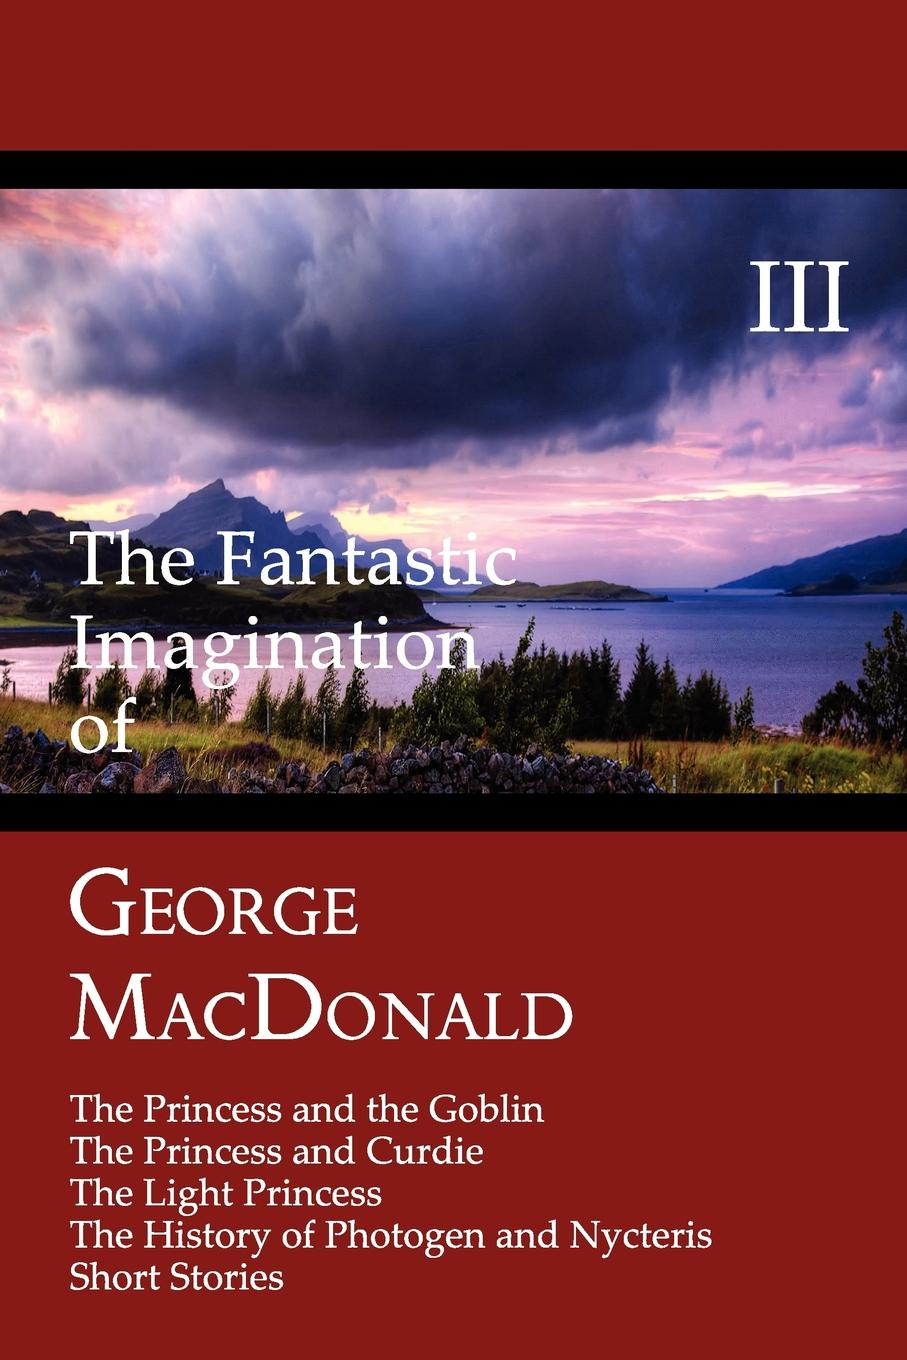 MacDonald George The Fantastic Imagination of George MacDonald, Volume III. The Princess and the Goblin, the Princess and Curdie, the Light Princess, the History of PH henry o collected tales iii the sleuths witches loaves pride of the cities